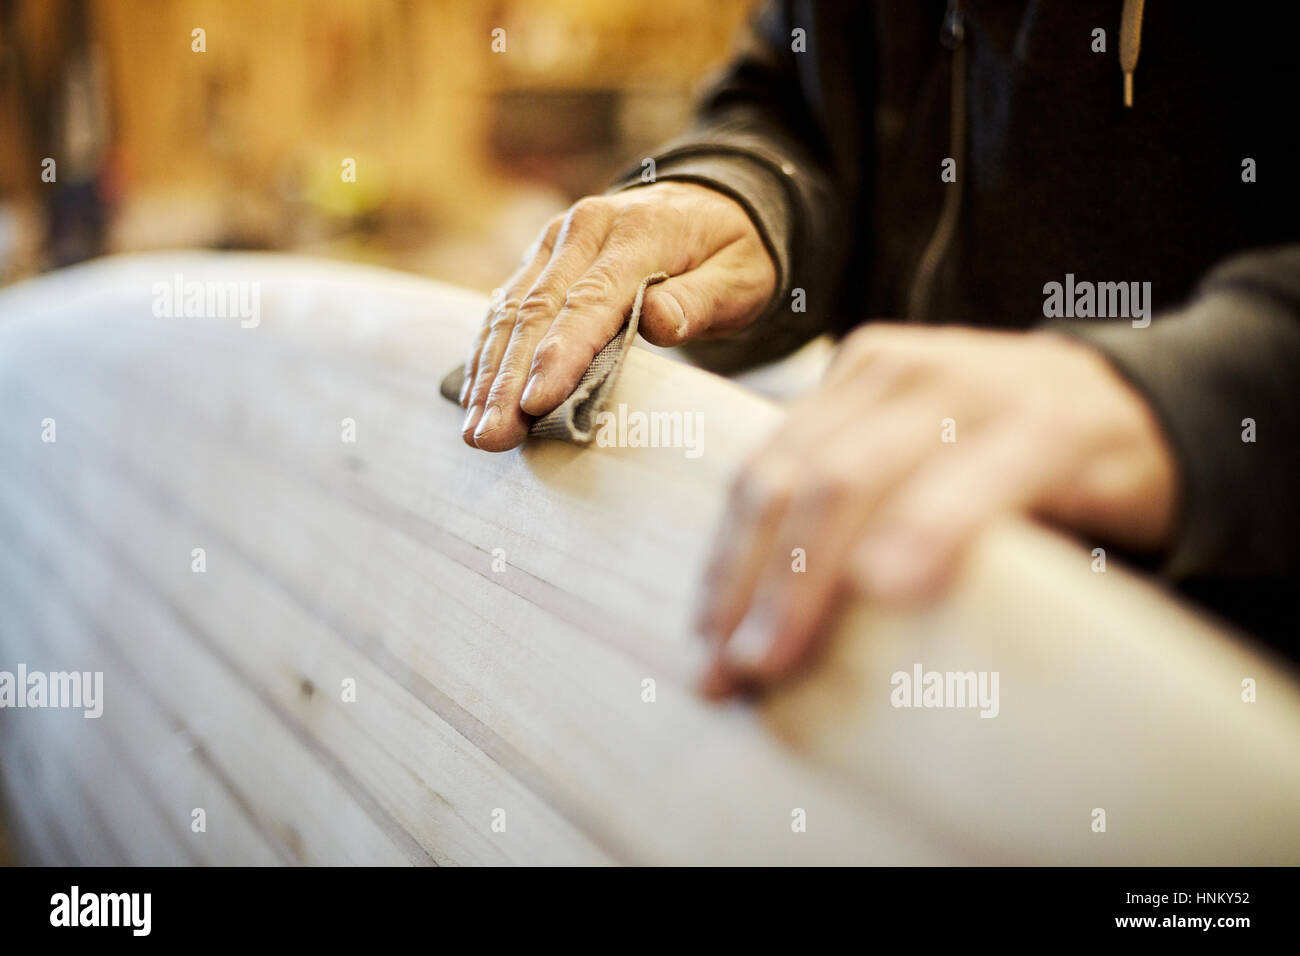 Man standing in a workshop sanding the edge of a wooden surfboard. - Stock Image